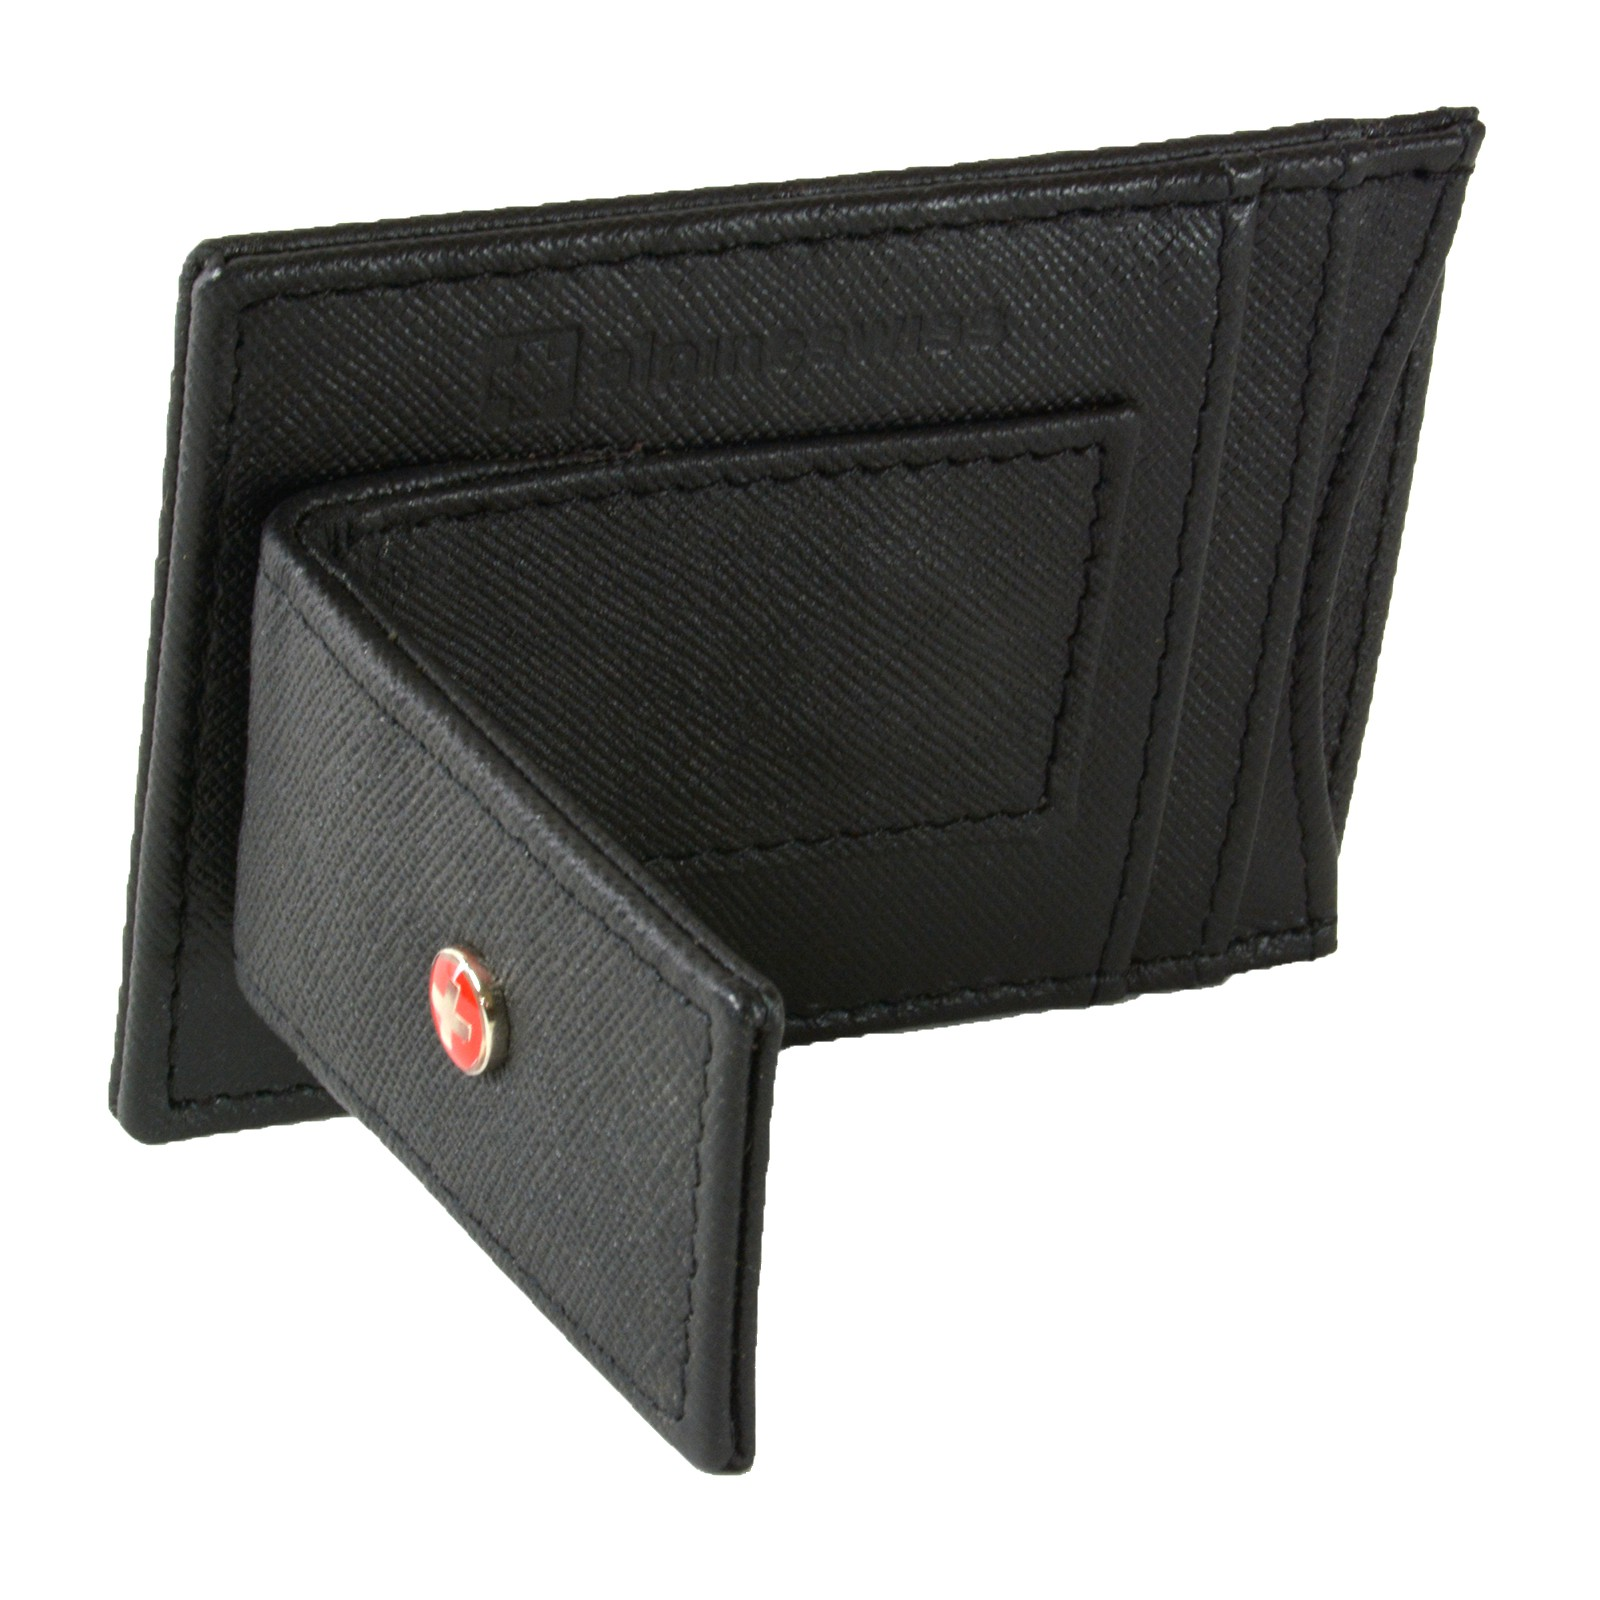 AlpineSwiss-Mens-Leather-Money-Clip-Magnet-Front-Pocket-Wallet-Slim-ID-Card-Case thumbnail 46